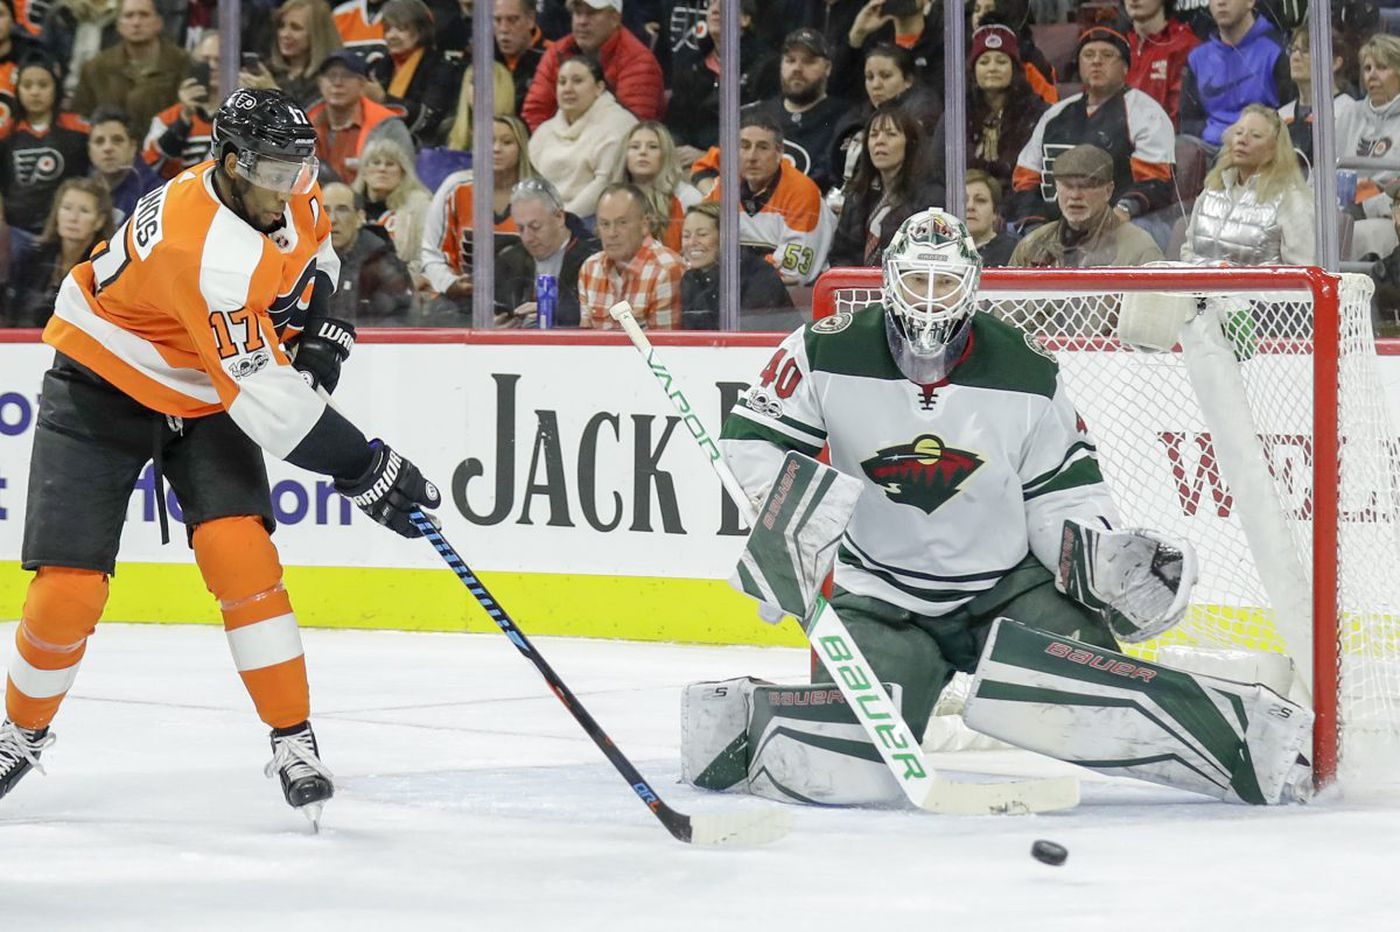 Wild beat sleepy Flyers, 1-0